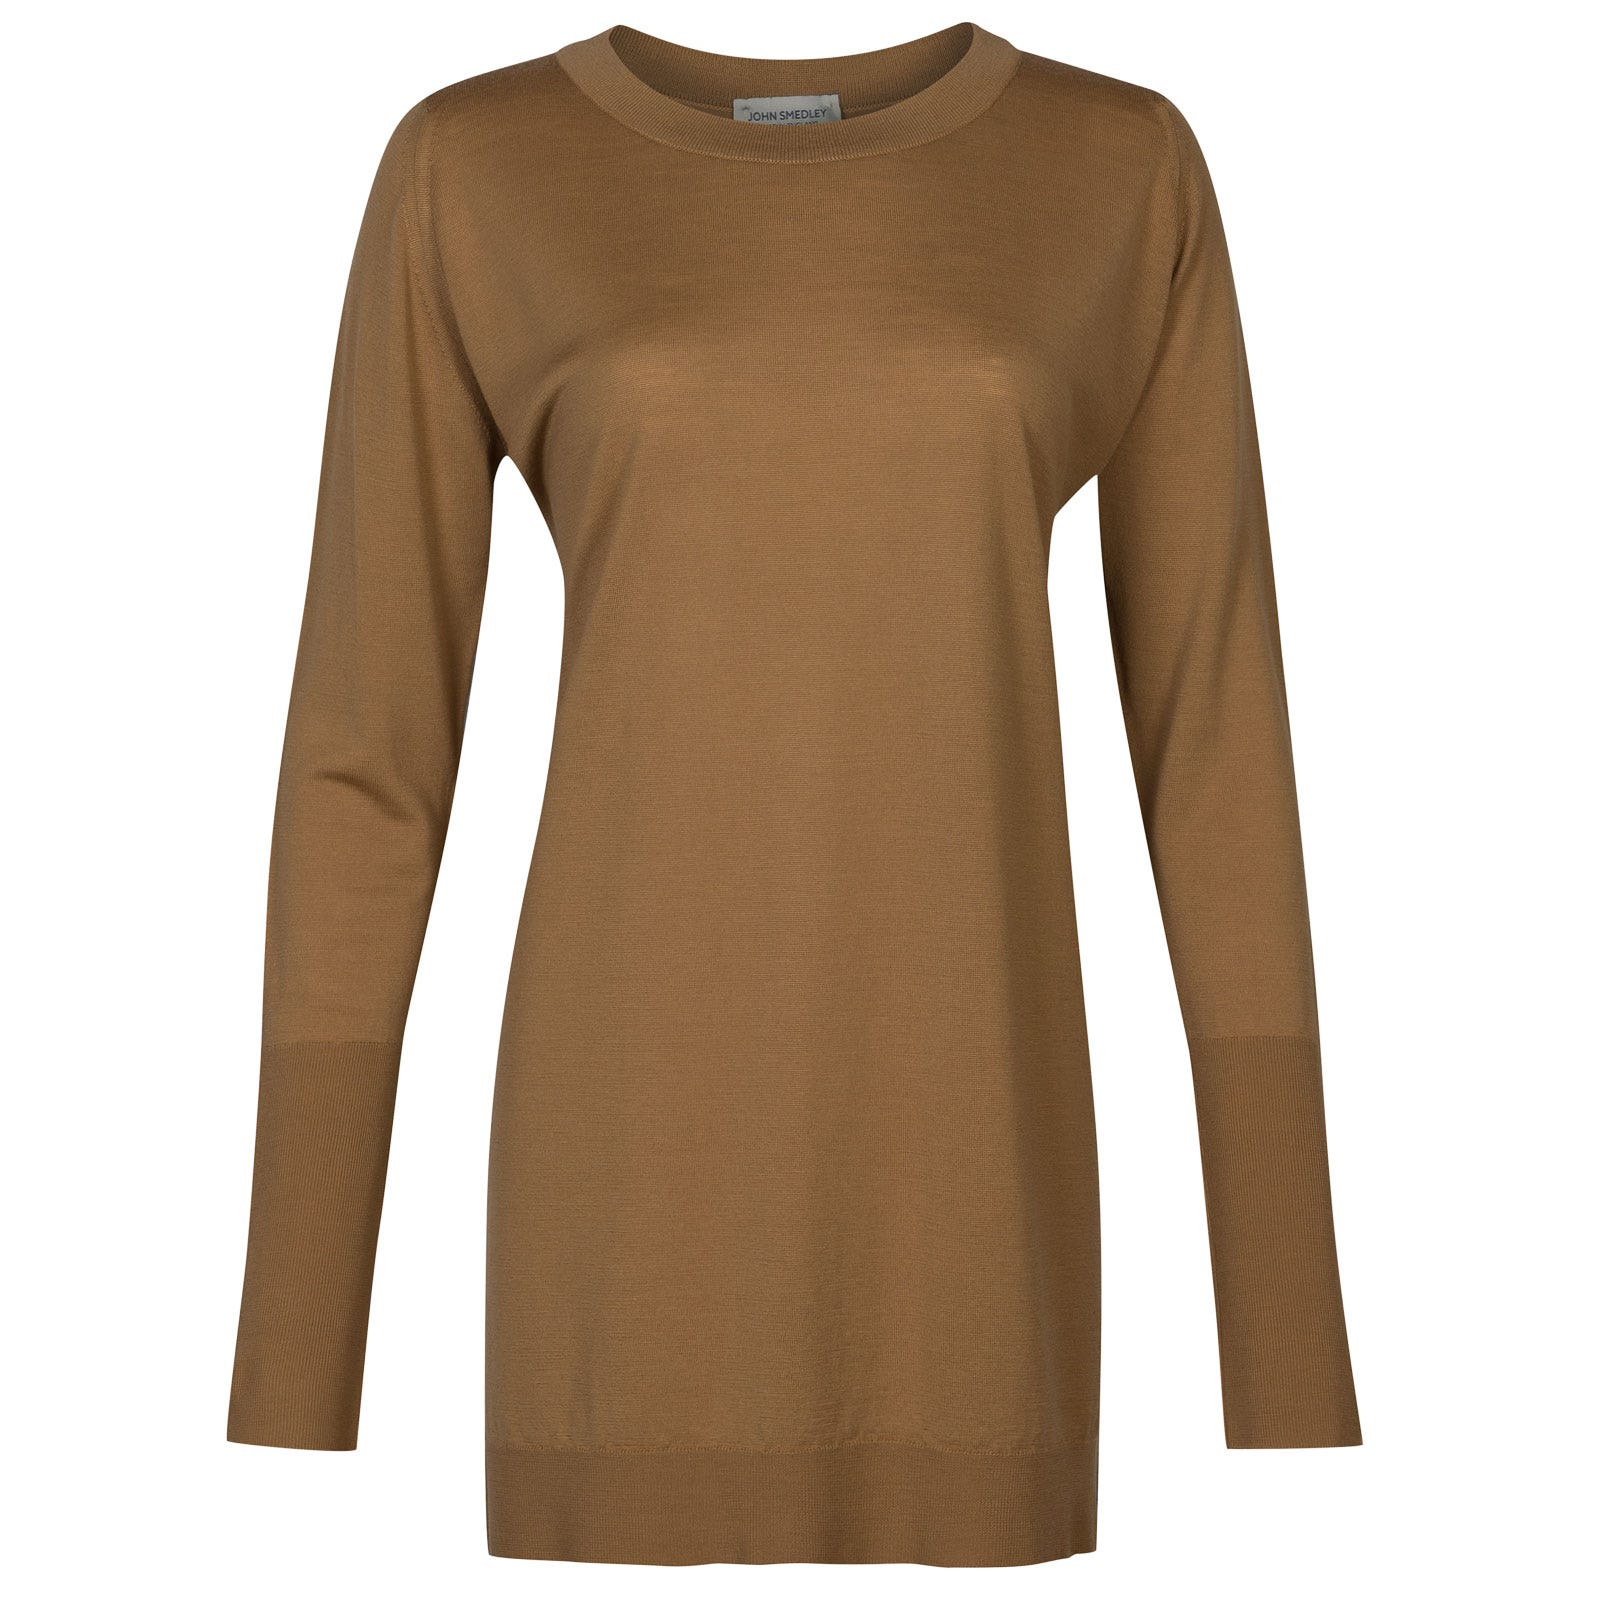 John Smedley molloy Merino Wool Sweater in Camel-XL